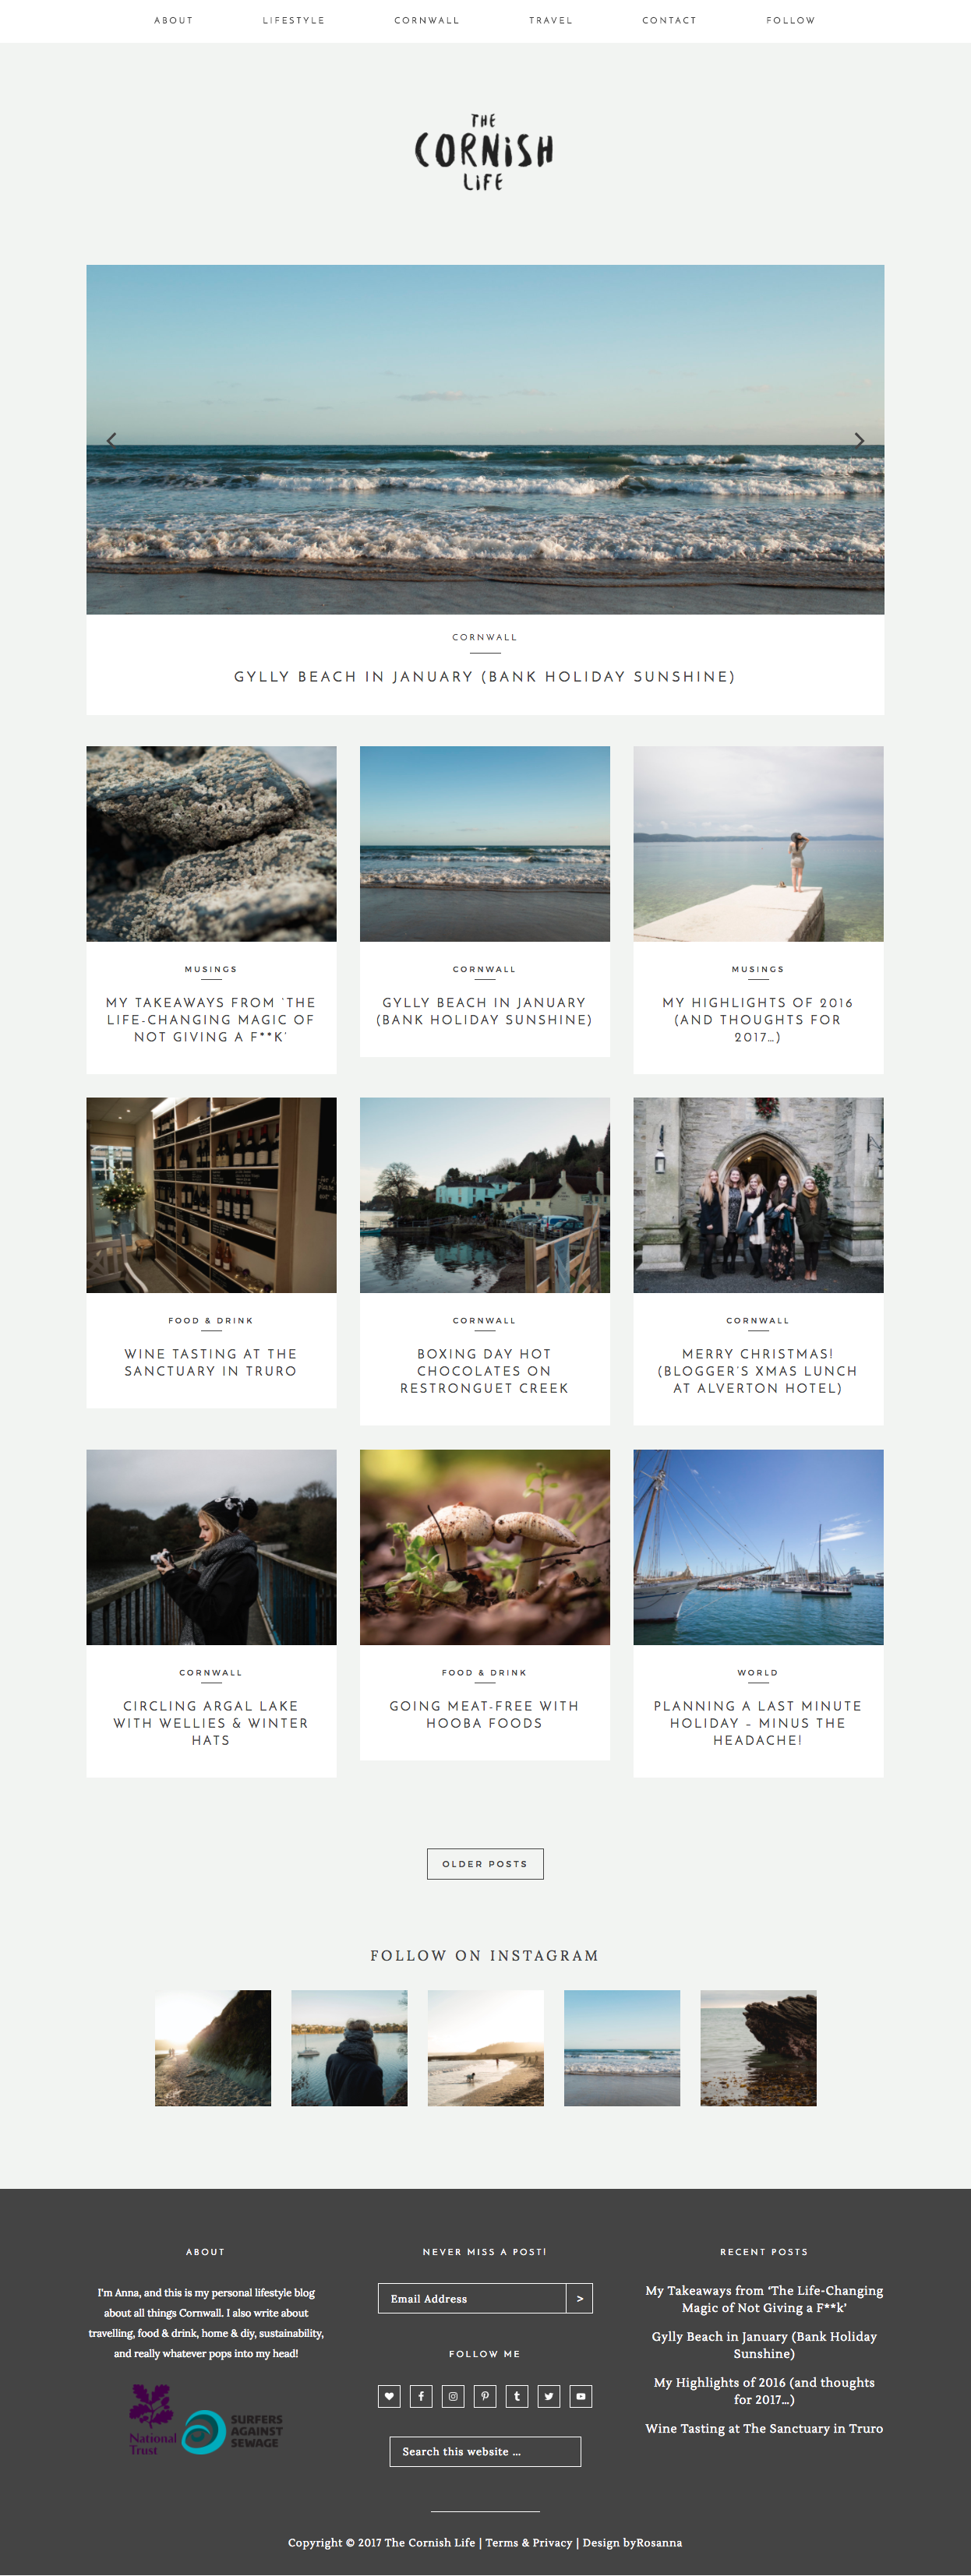 The Cornish Life Website Design | byRosanna